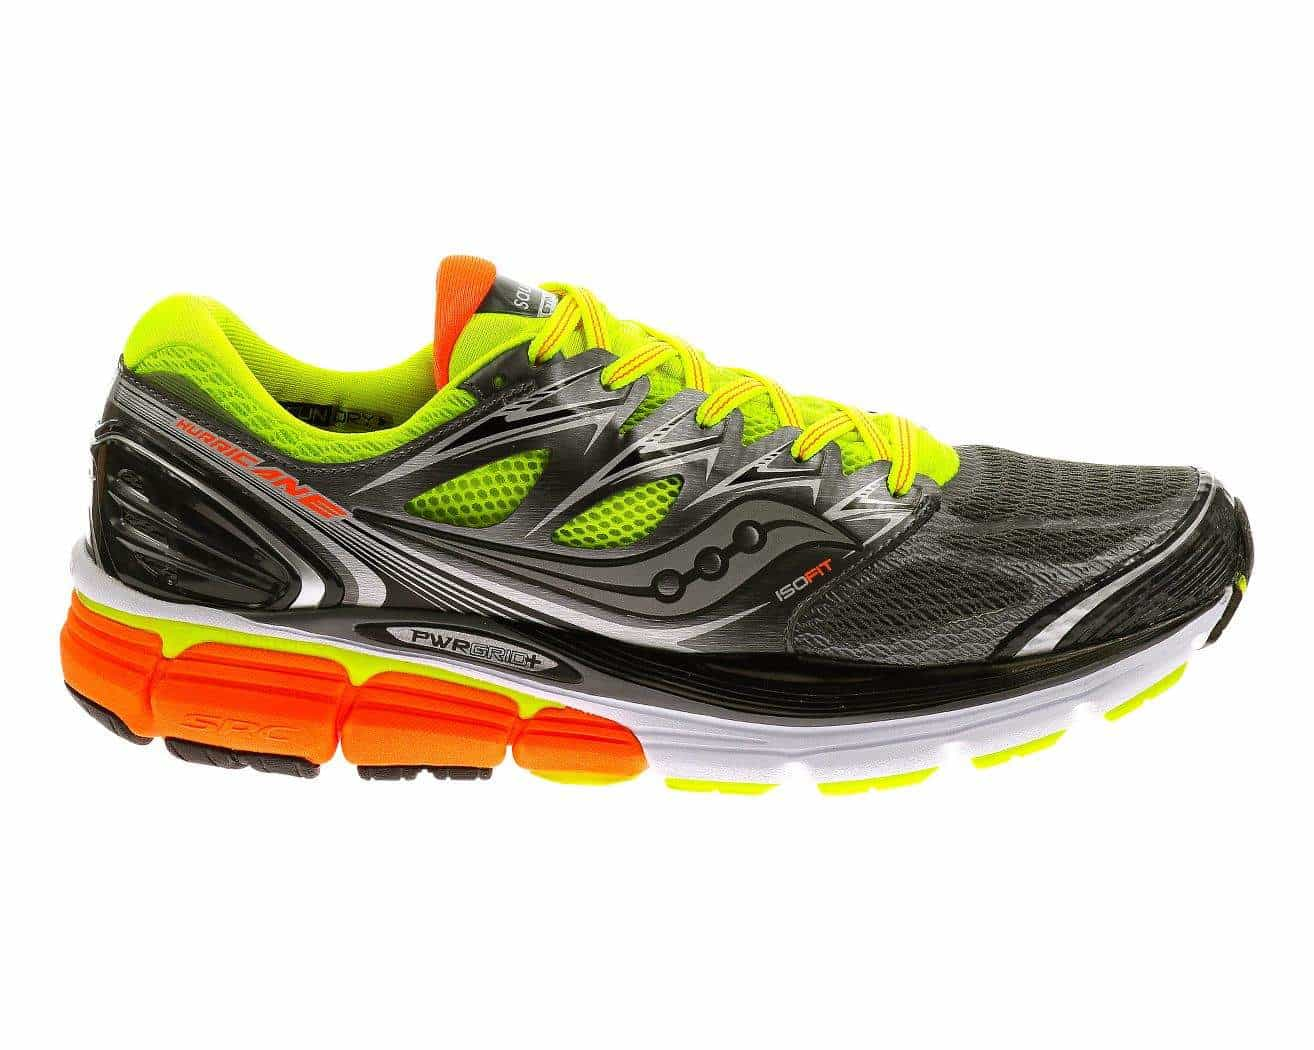 Best Running Shoes for Knee Pain In 2018 - Reviews and Guide